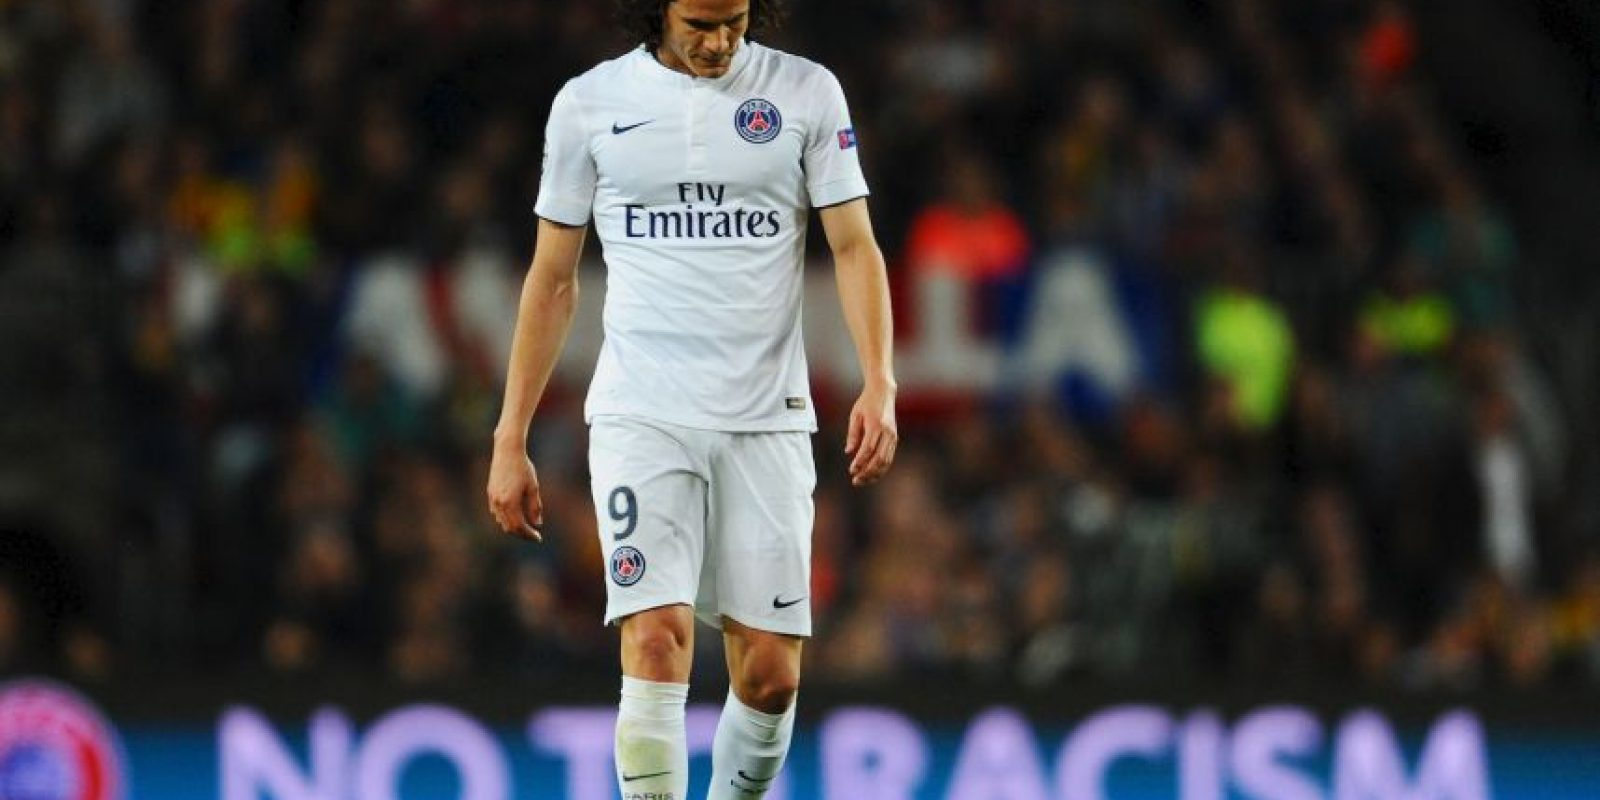 9. Edinson Cavani (Uruguay, PSG) Foto: Getty Images